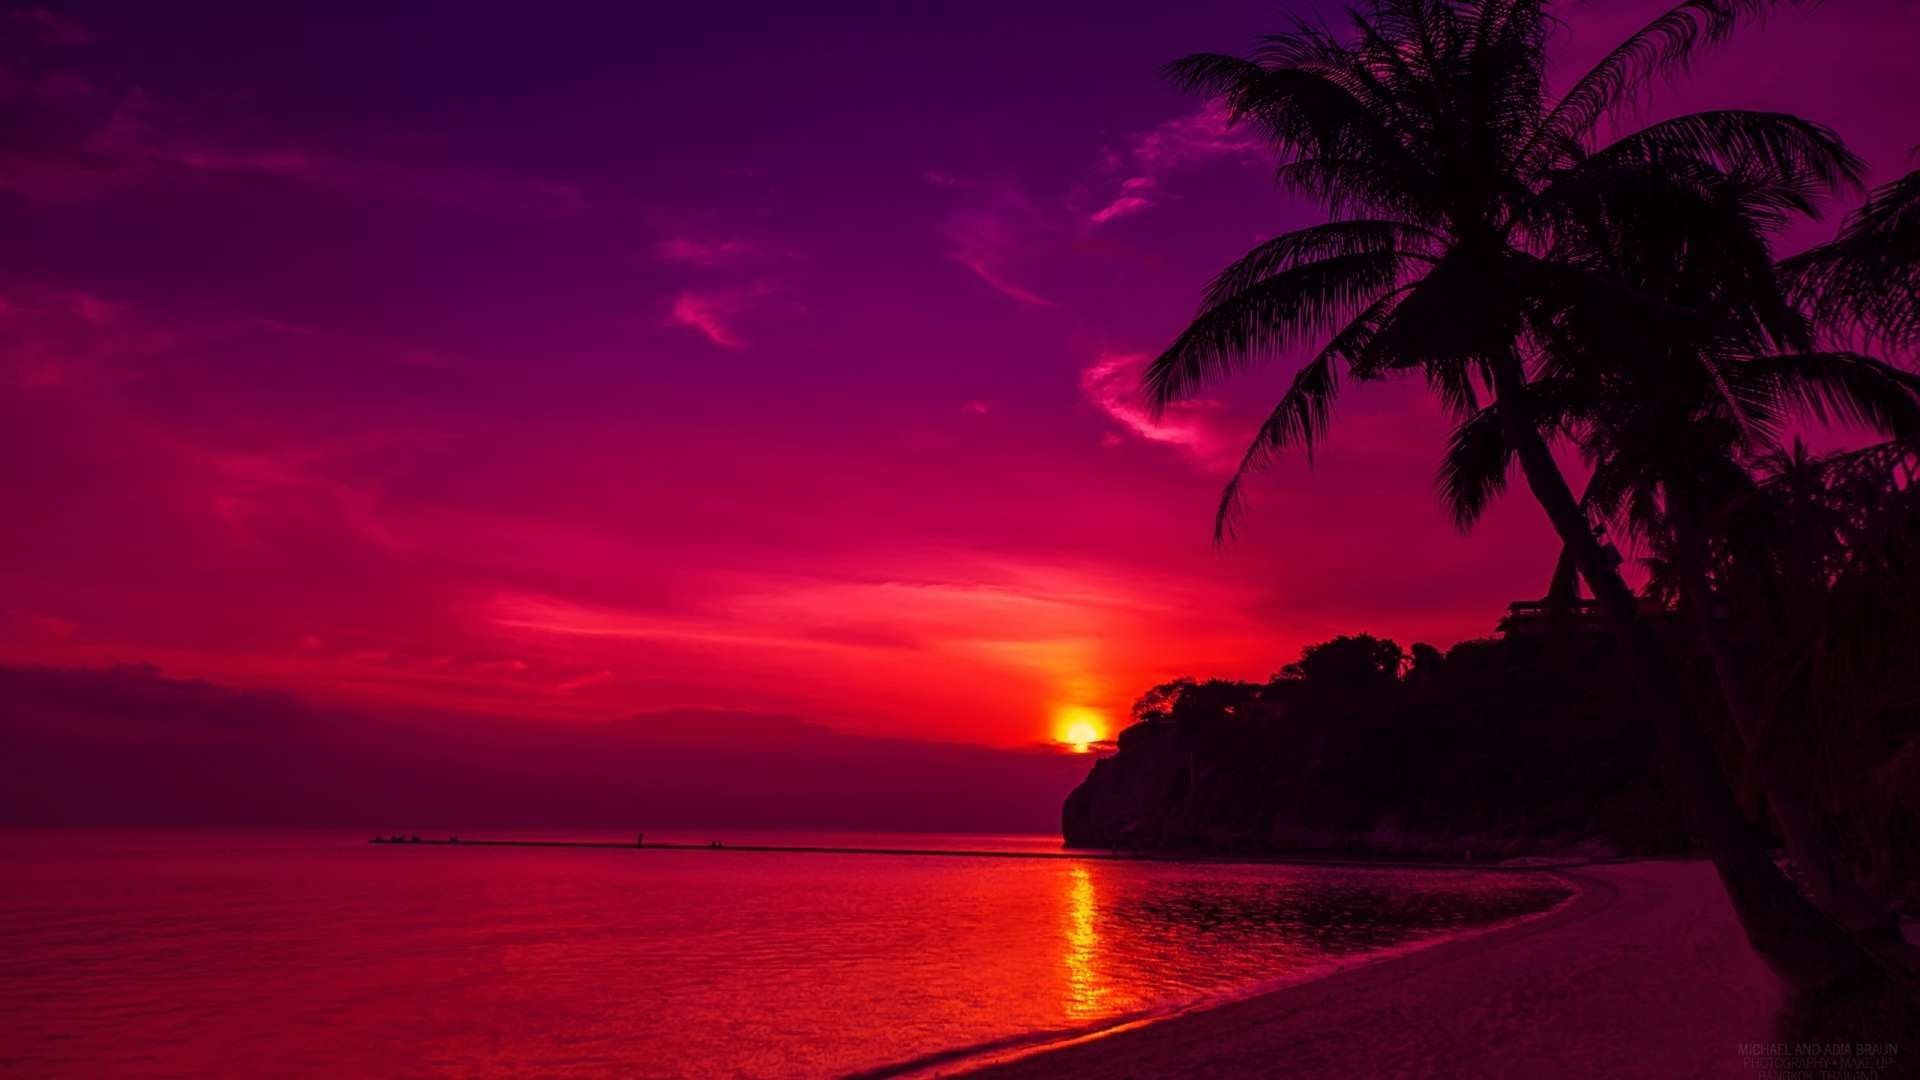 Wallpapers For > Hd Beach Sunset Wallpapers 1080p